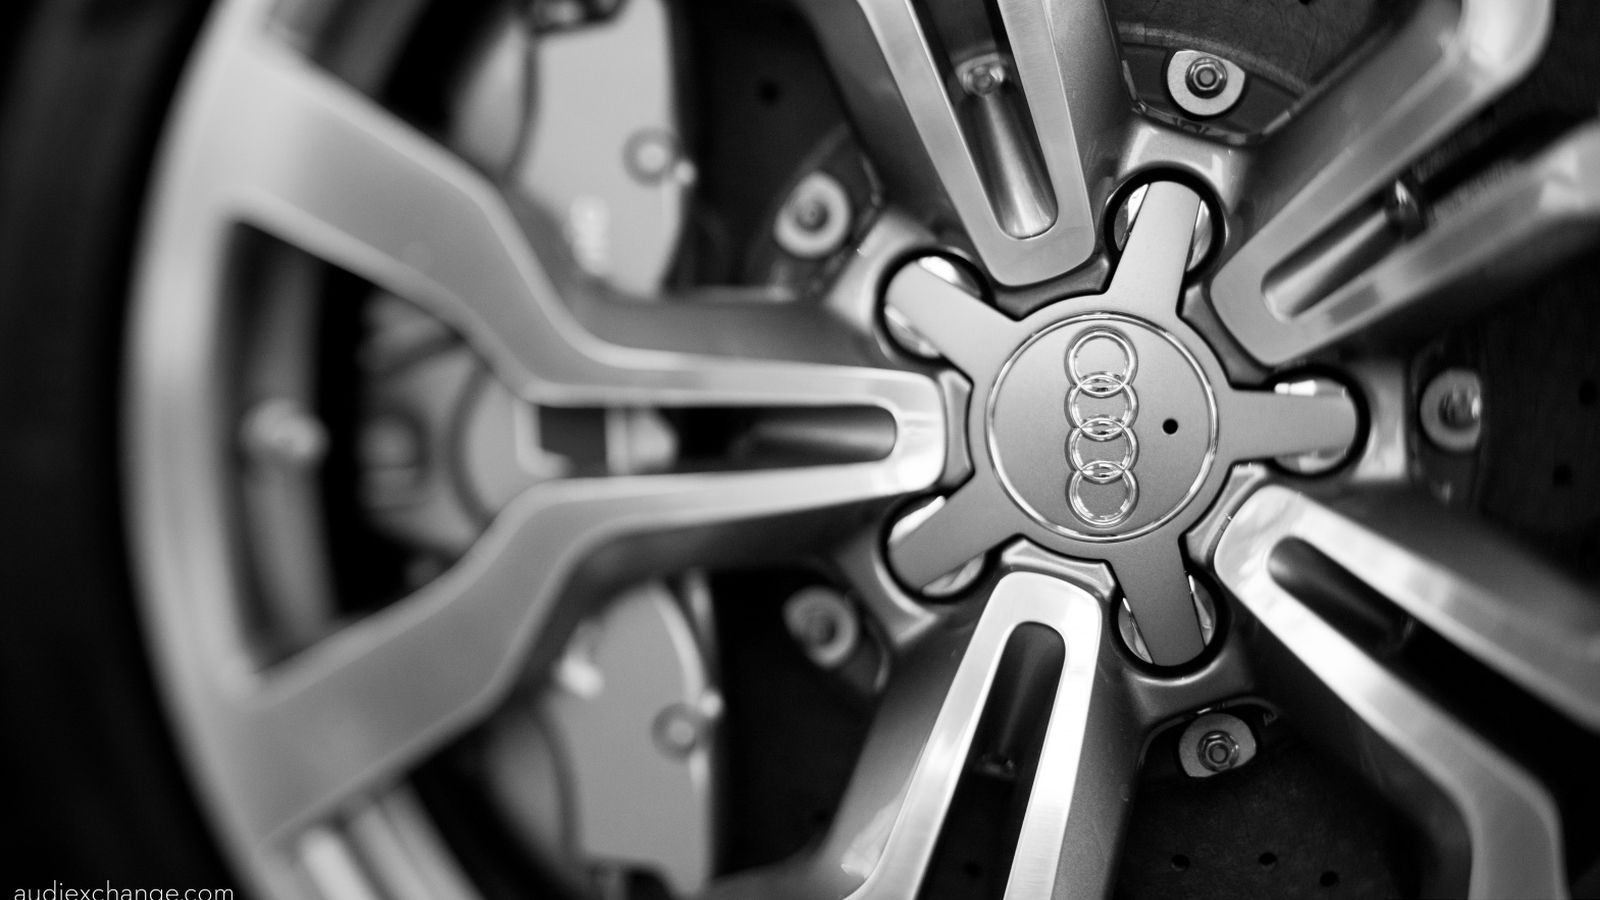 audi_r8_v10_5_2_fsi_coupe_wheel-wallpaper-1600x900.jpg